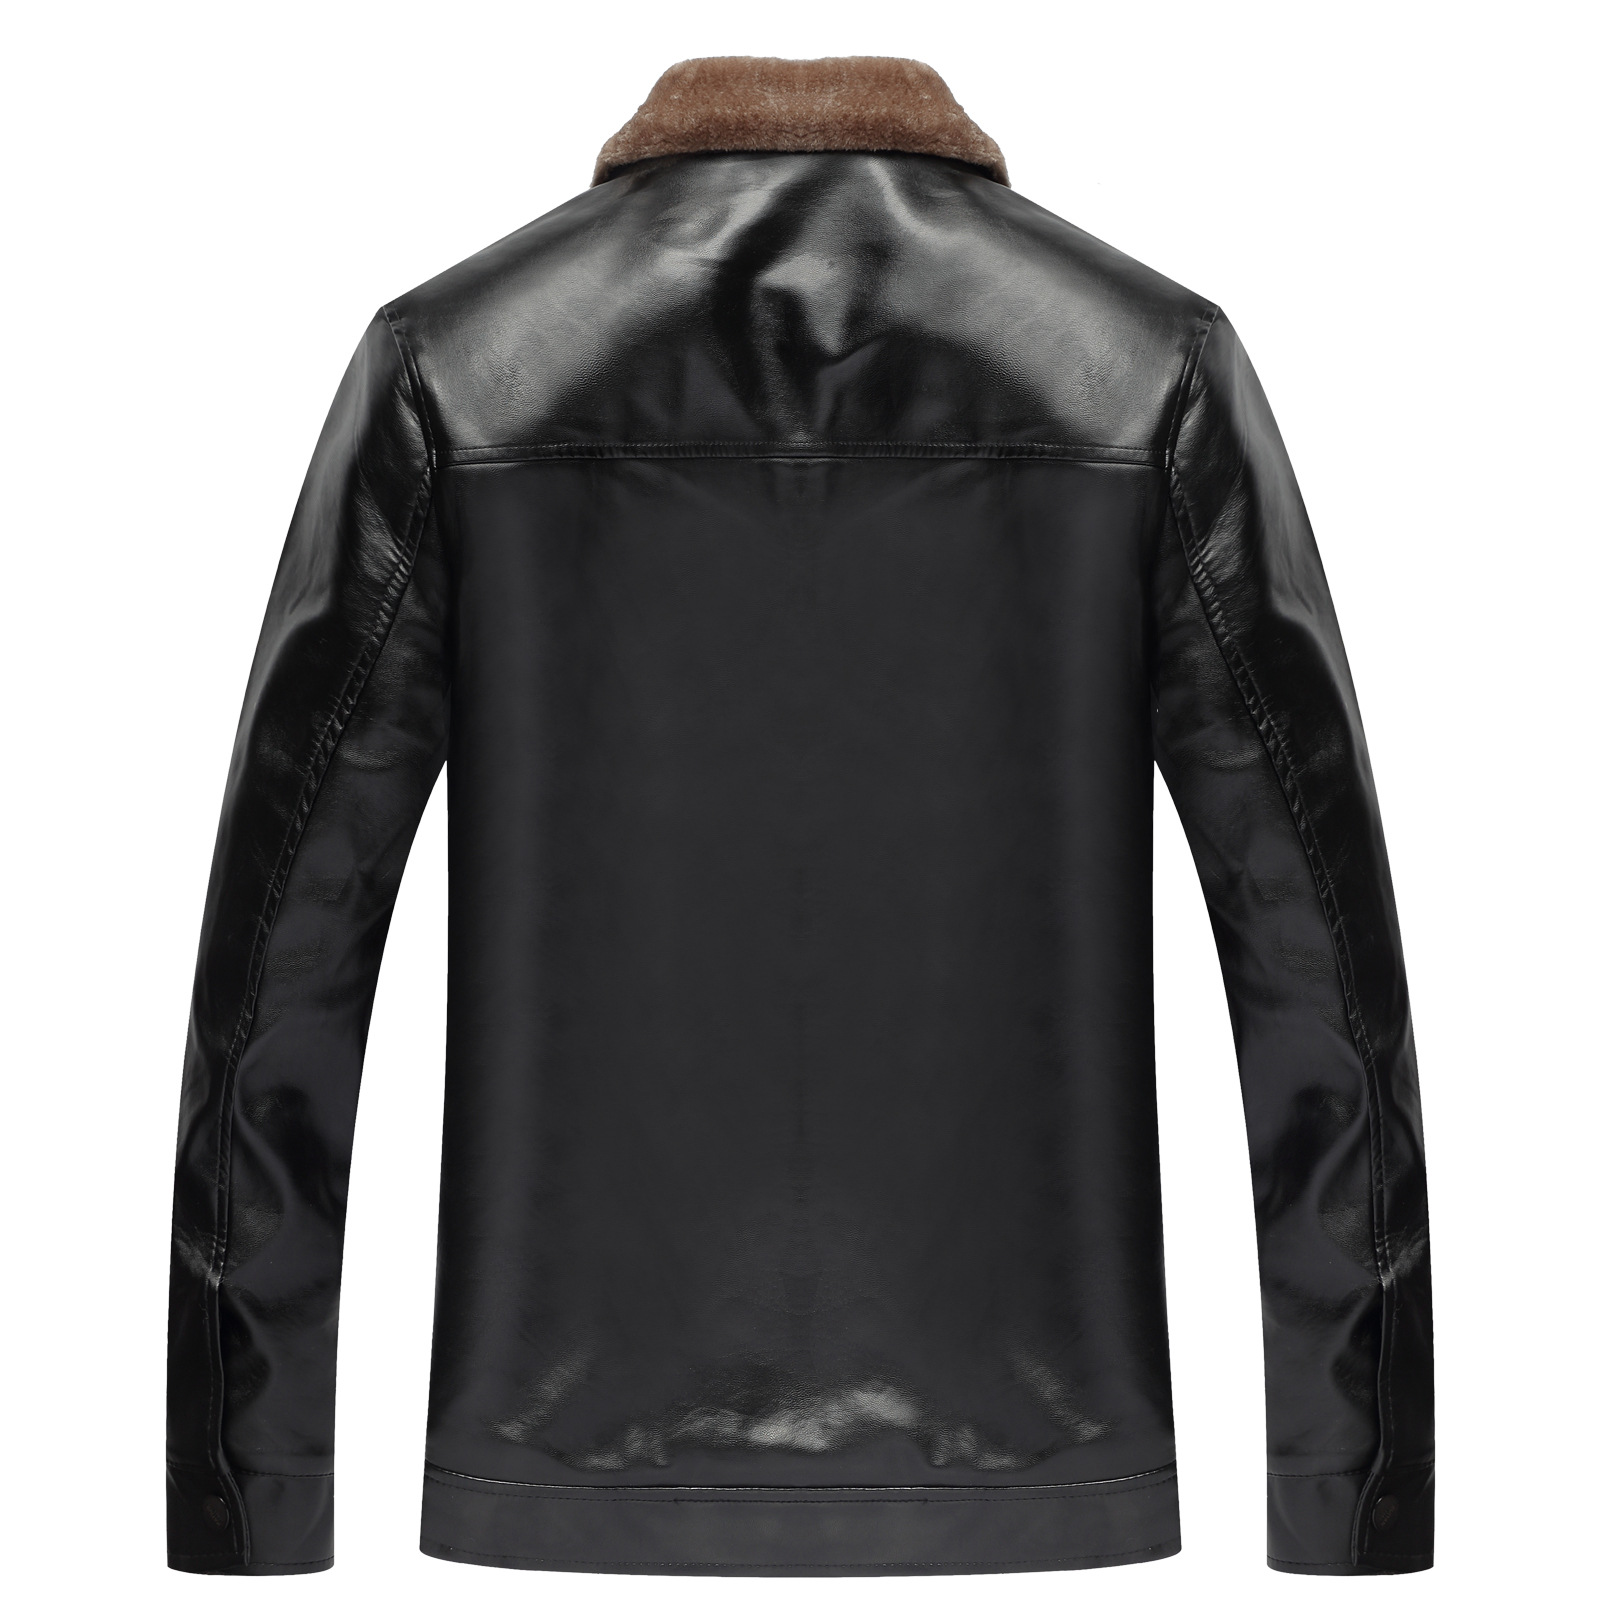 Hot Sales Customizable Business Men Plus Velvet Leather Coat Middle-aged Fold-down Collar Thick Warm PU Leather Jacket